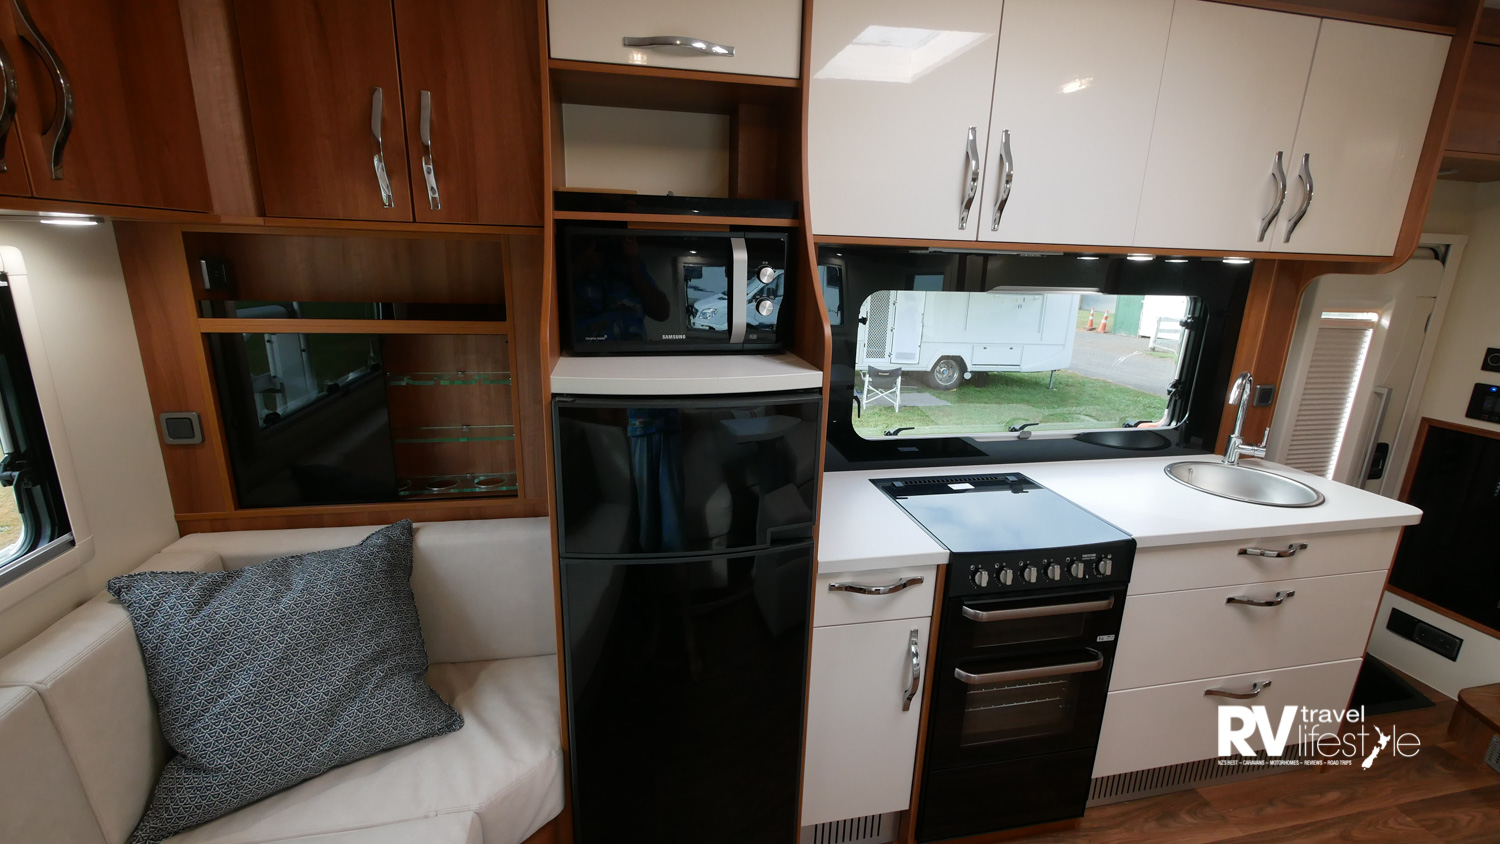 A stylish kitchen setup with 195L AES Dometic fridge, full-sized oven with four-burner gas hob, oven and separate grill, and HPL kitchen worktops